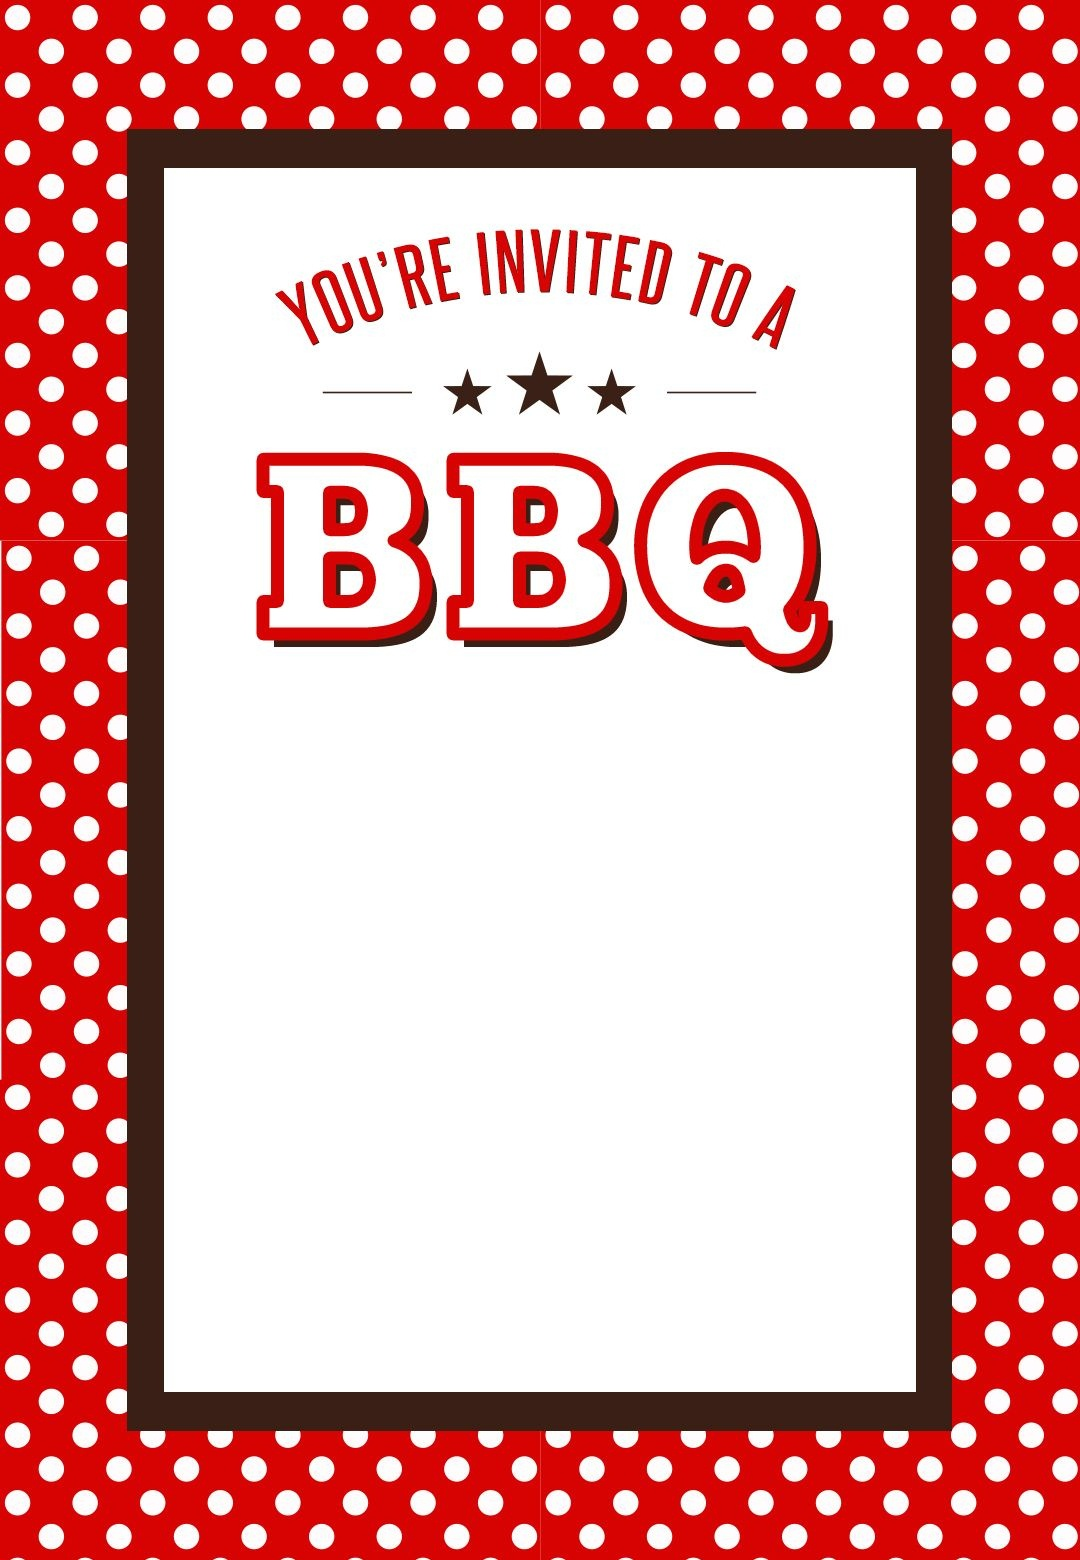 Bbq Party #invitation Free Printables | Bbq Party Ideas | Bbq, Bbq Party - Free Printable Cookout Invitations